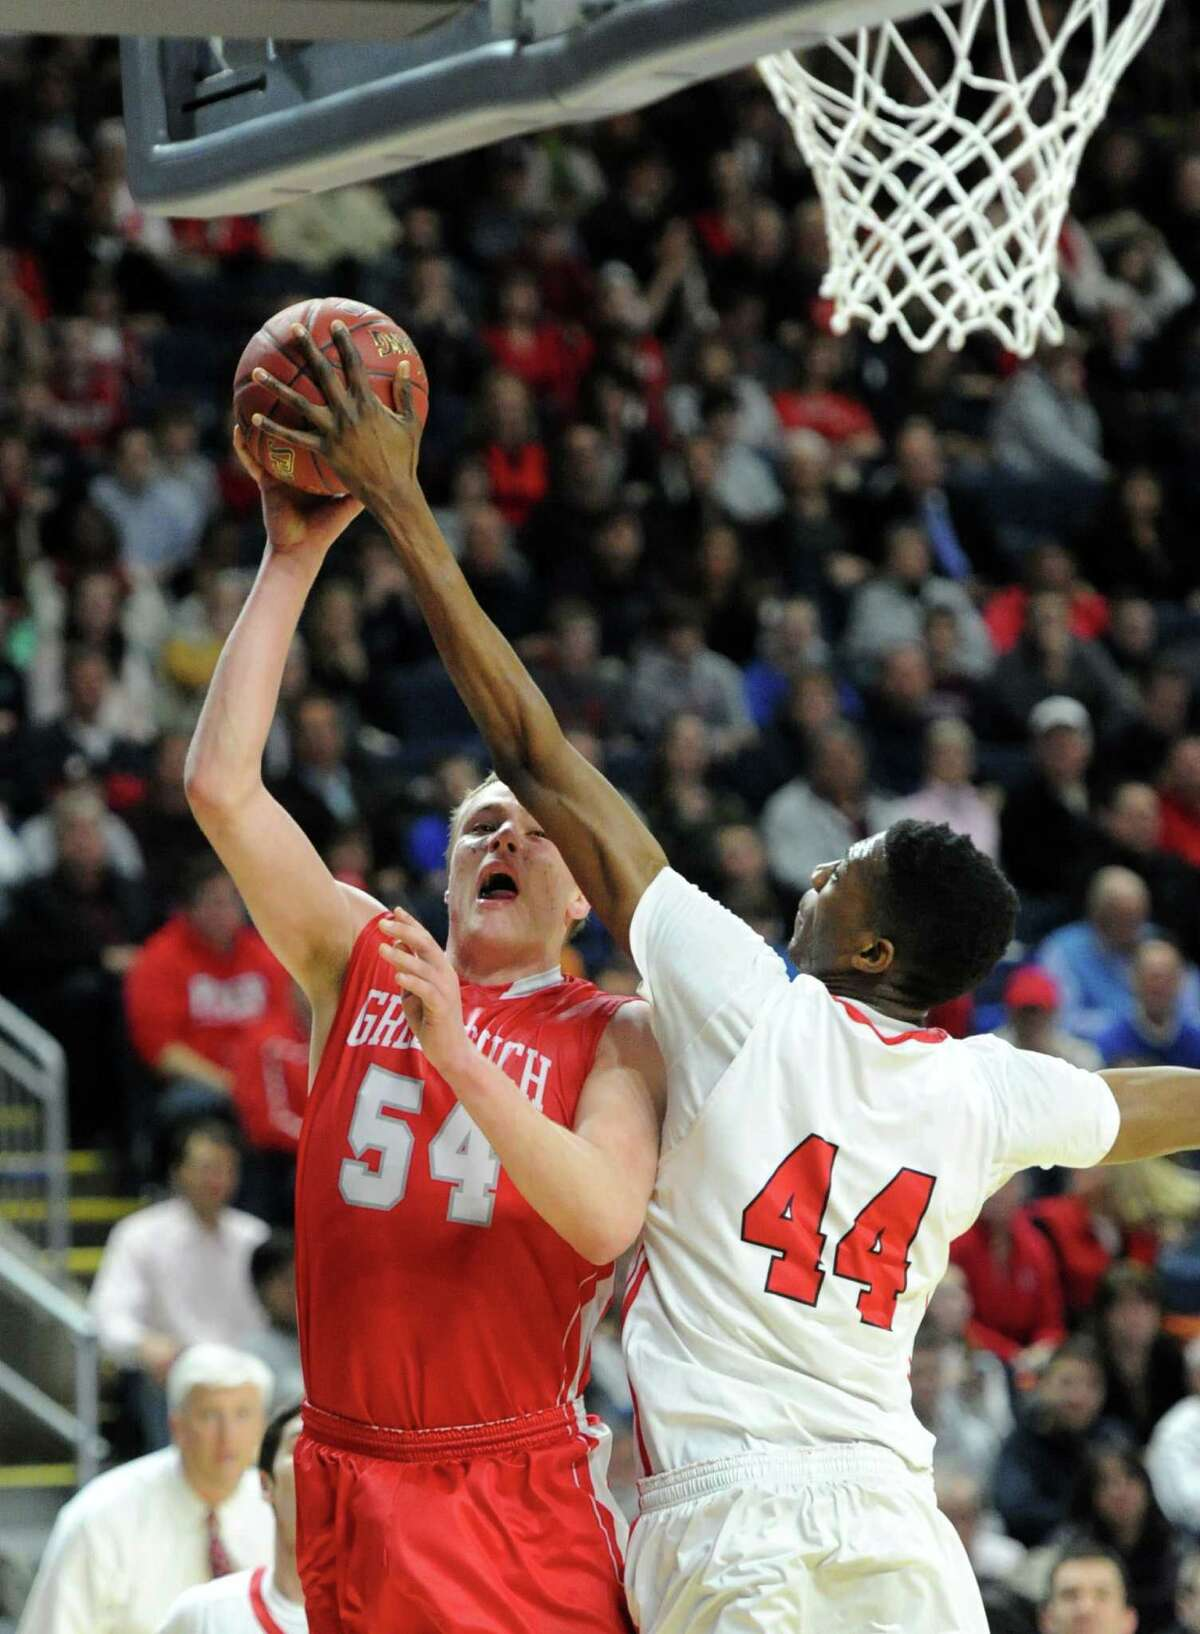 At right, Paschal Chukwu (#44) of Fairfield Prep blocks the shot of Alex Wolf (#54 ) of Greenwich during the Class LL boys basketball semi-final game between Fairfield Prep and Greenwich High School at the Webster Bank Arena in Bridgeport, Conn., Wednesday, March 19, 2014.